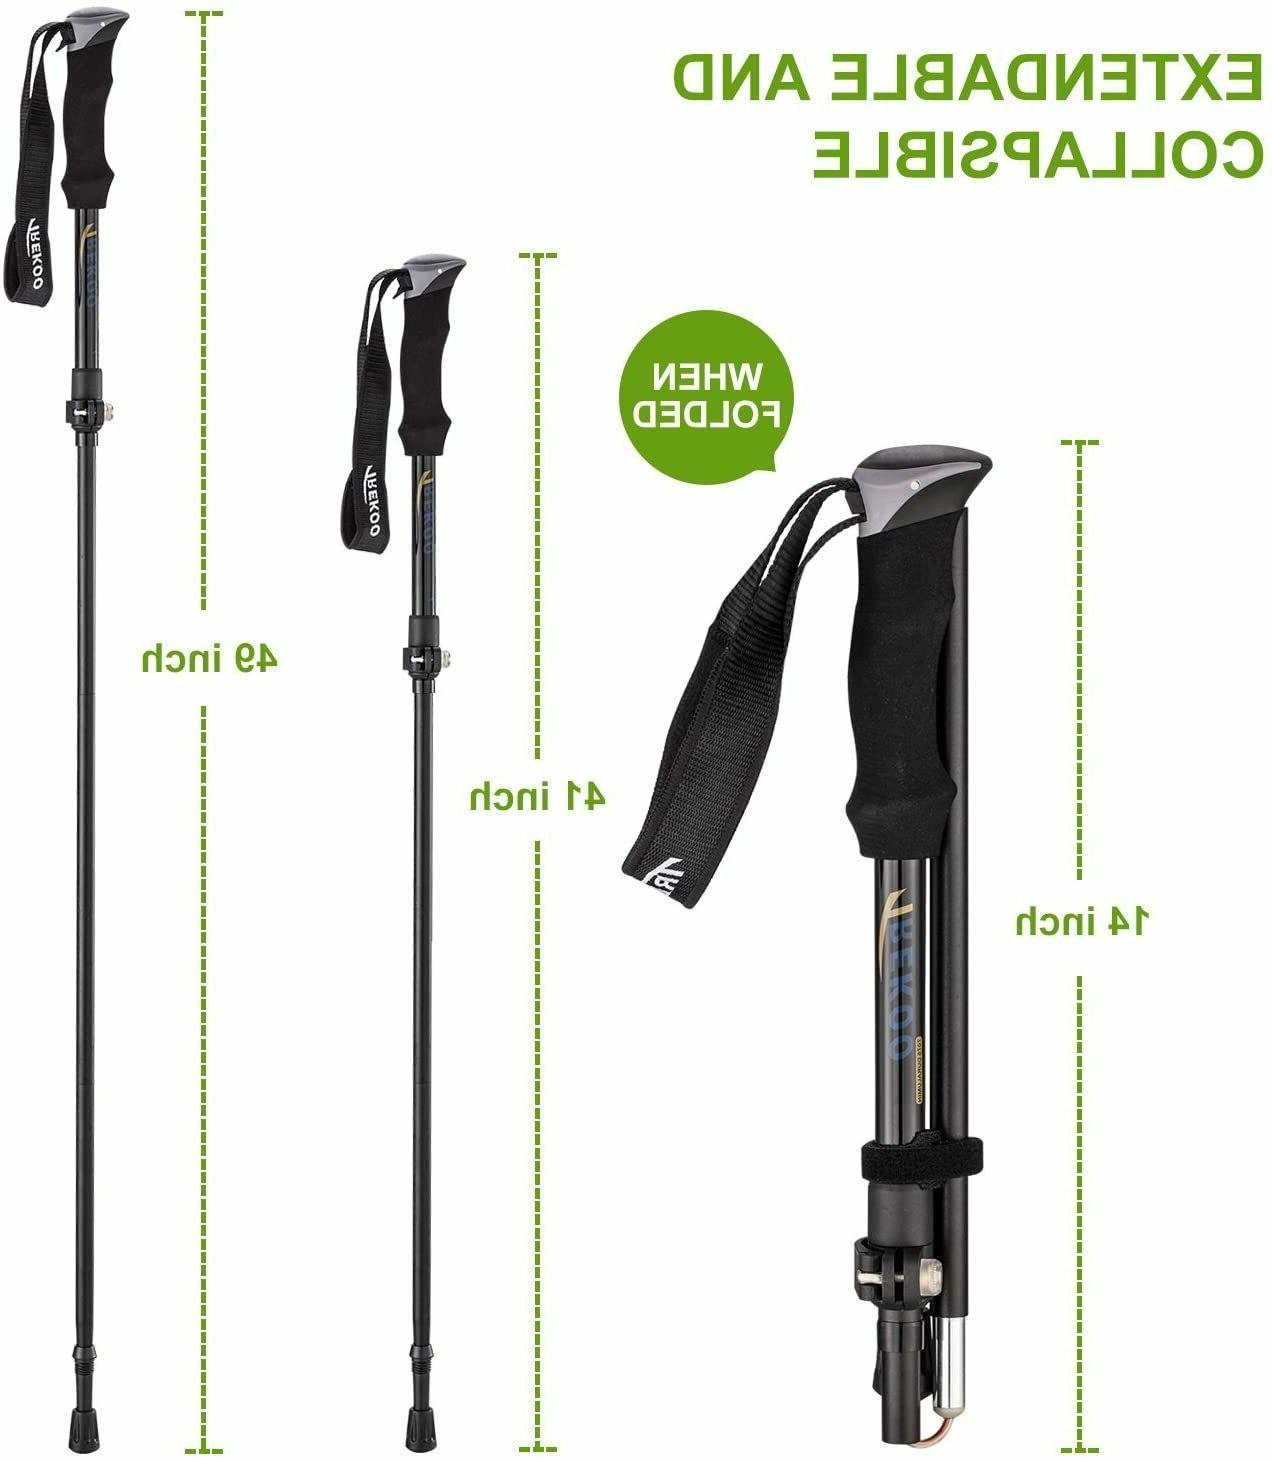 Pair Hiking Sticks Adjustable anti-shock